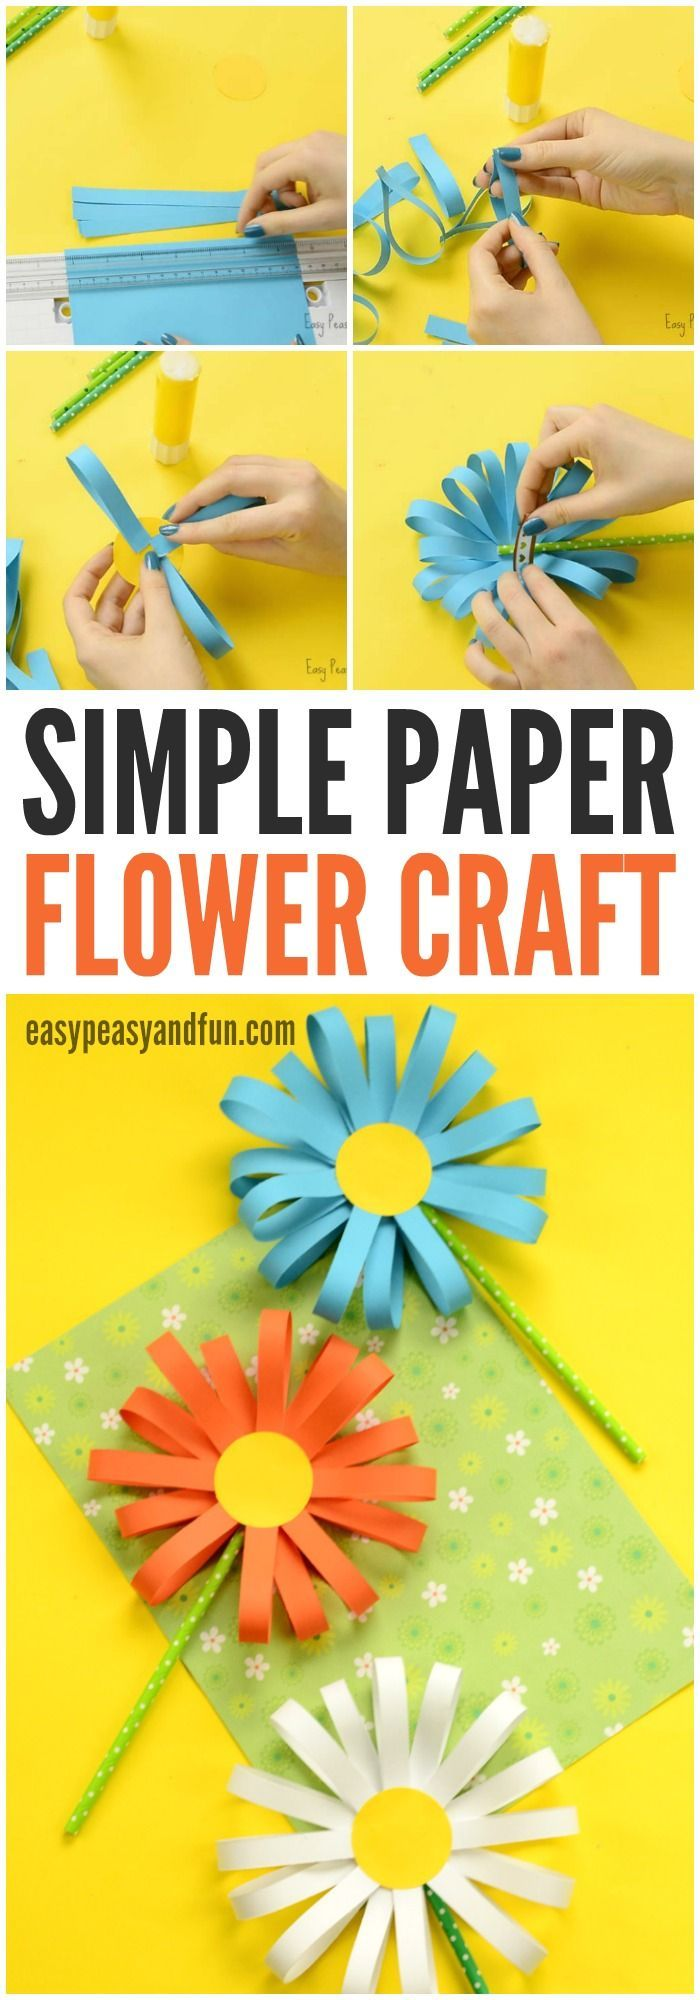 Craft Happy thinks this Simple Paper Flower Craft is super cute. A great springtime craft for older kids!